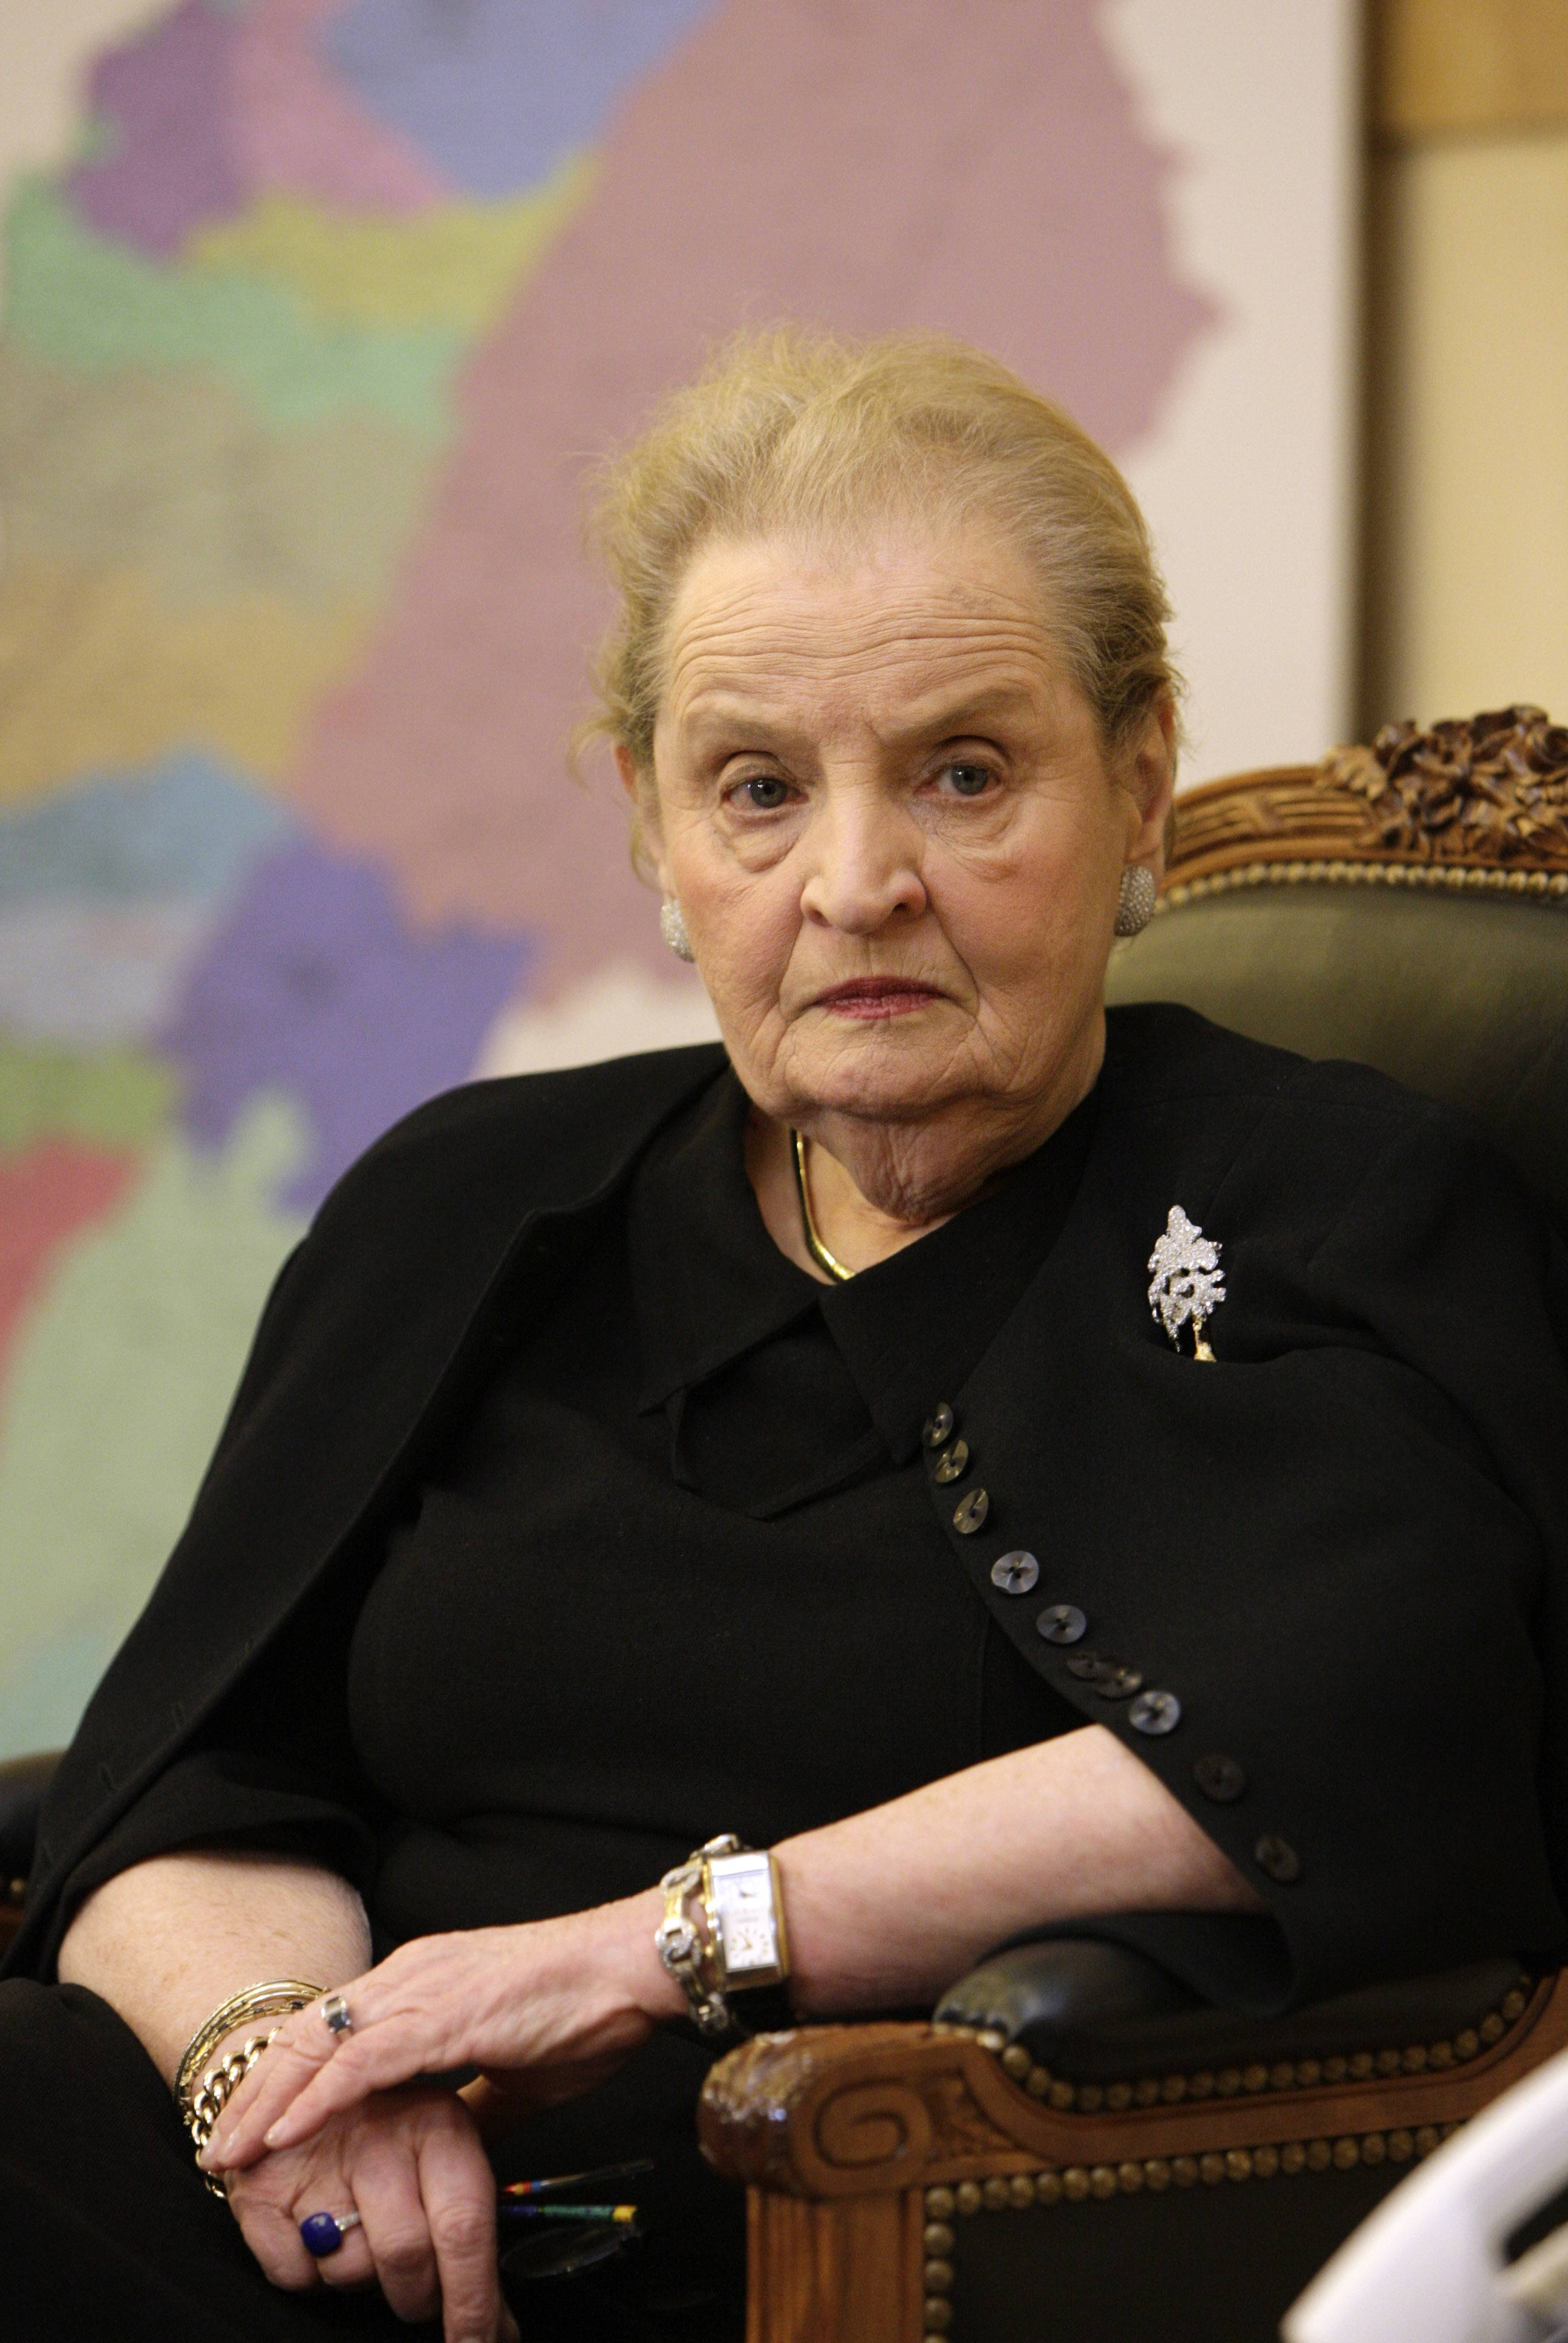 Former US Secretary of State Madeleine Albright was warm and engaging as she met with fans to talk about her book on political pins, Becky Anderson said.